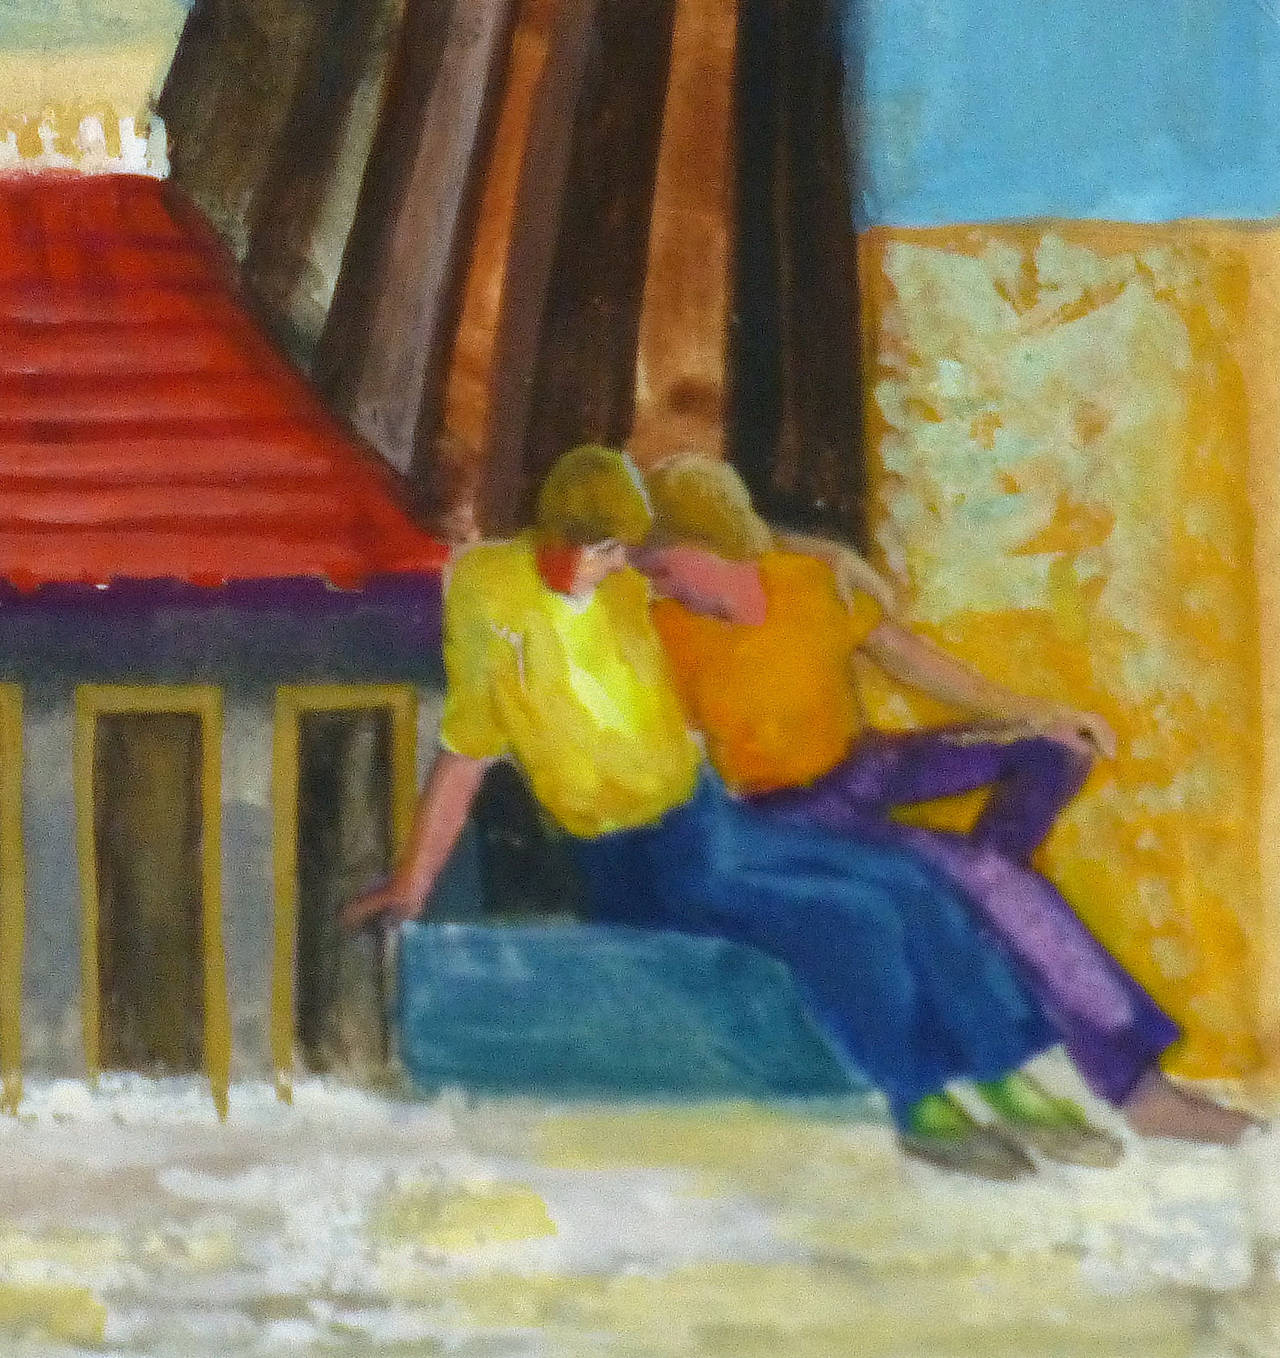 Hang Out - Painting by Elisabeth Hoffova